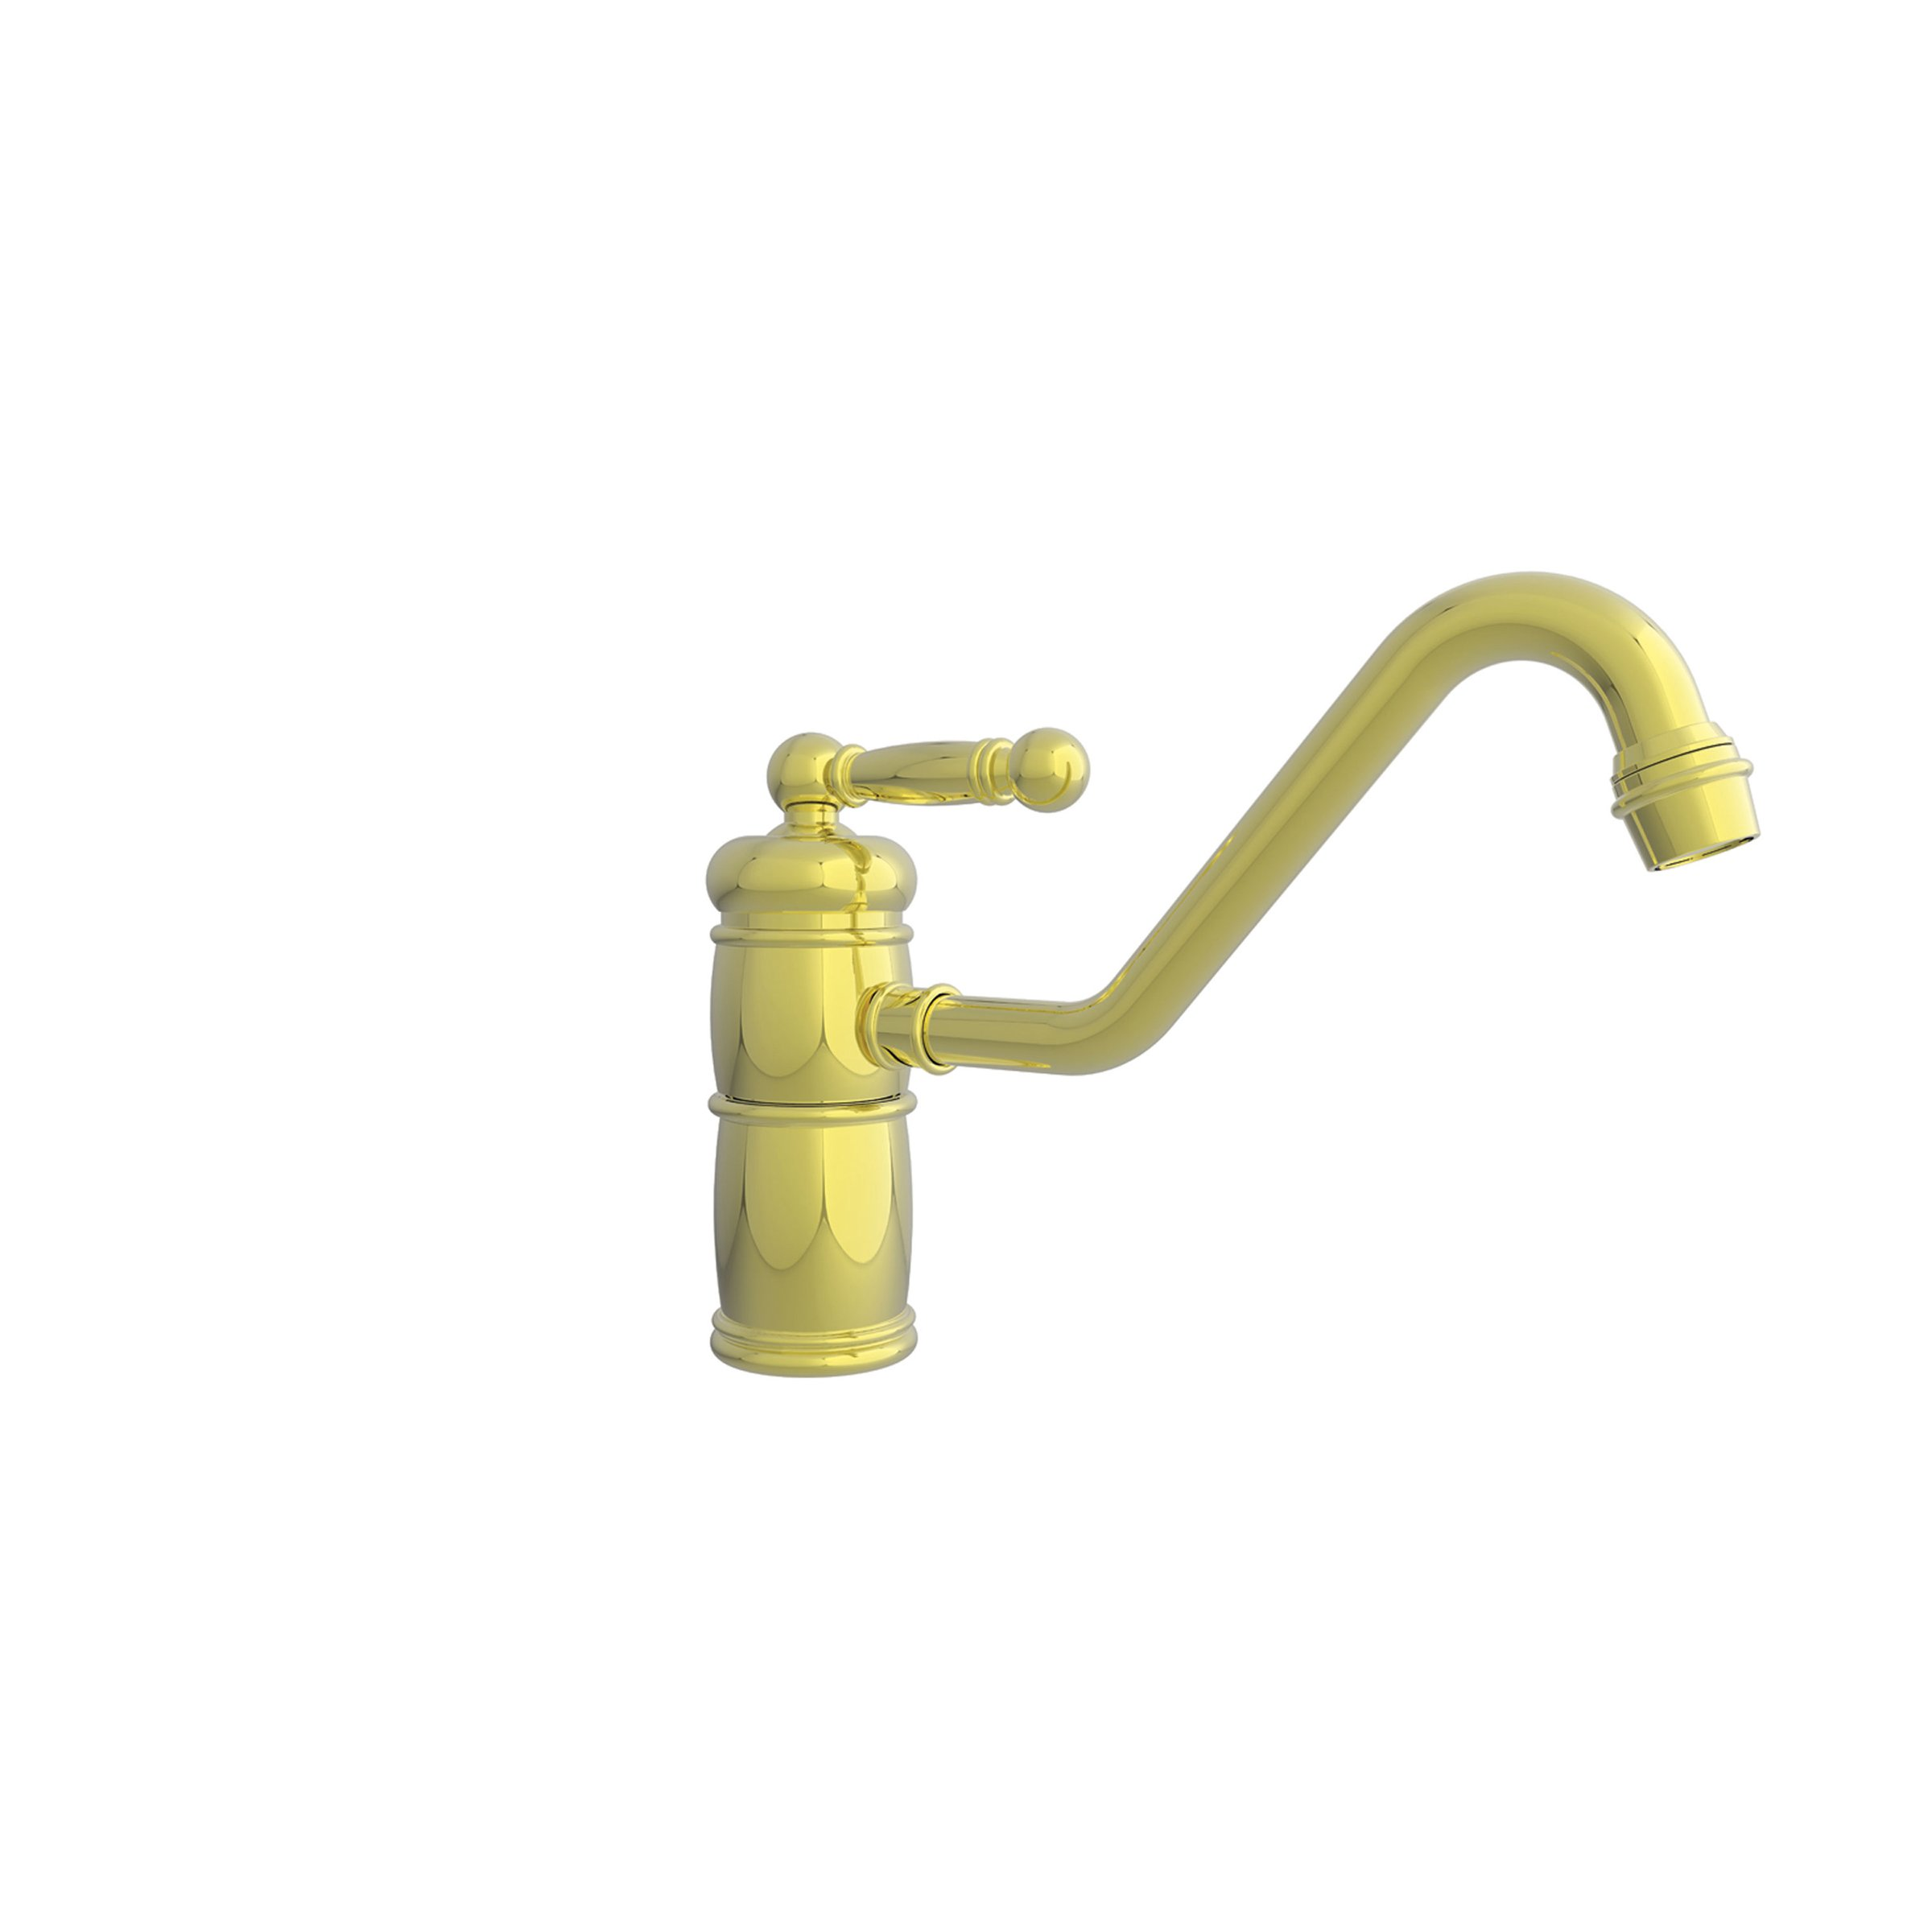 Newport Brass 940 Nadya Single Handle Kitchen Faucet Newport Brass Faucets